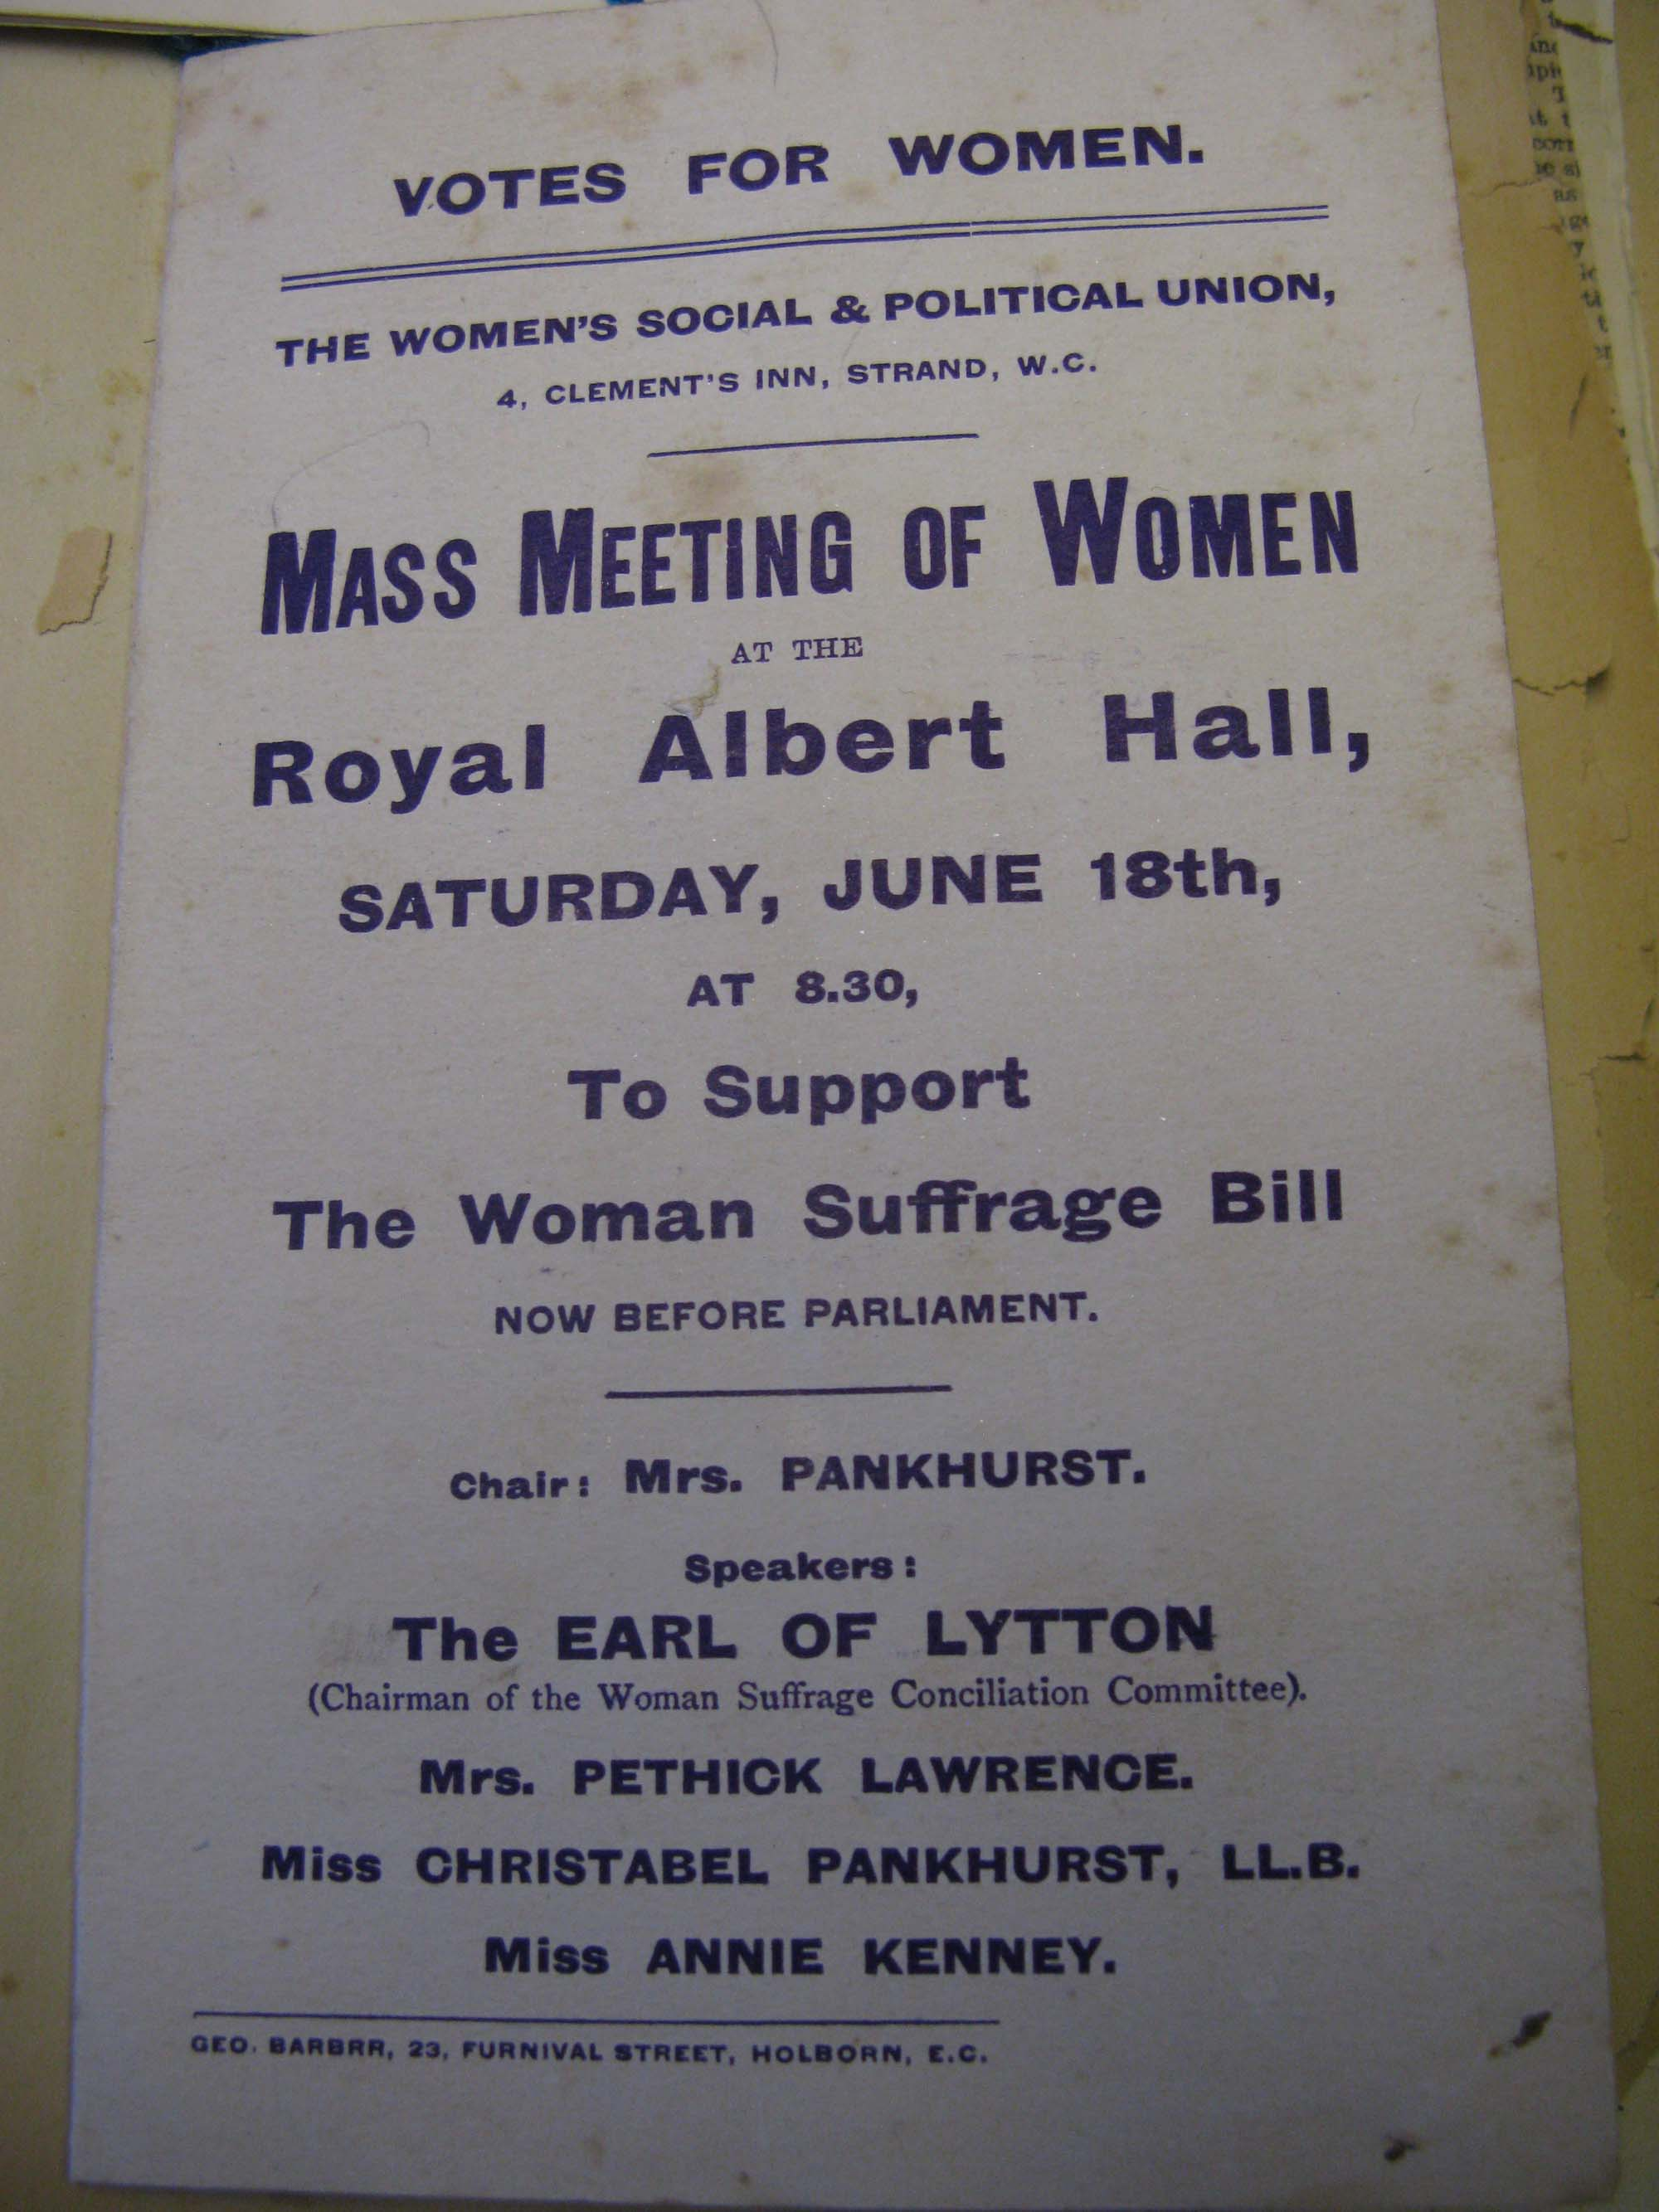 a photo of a flyer with mass meeting of Women Royal Albert Hall